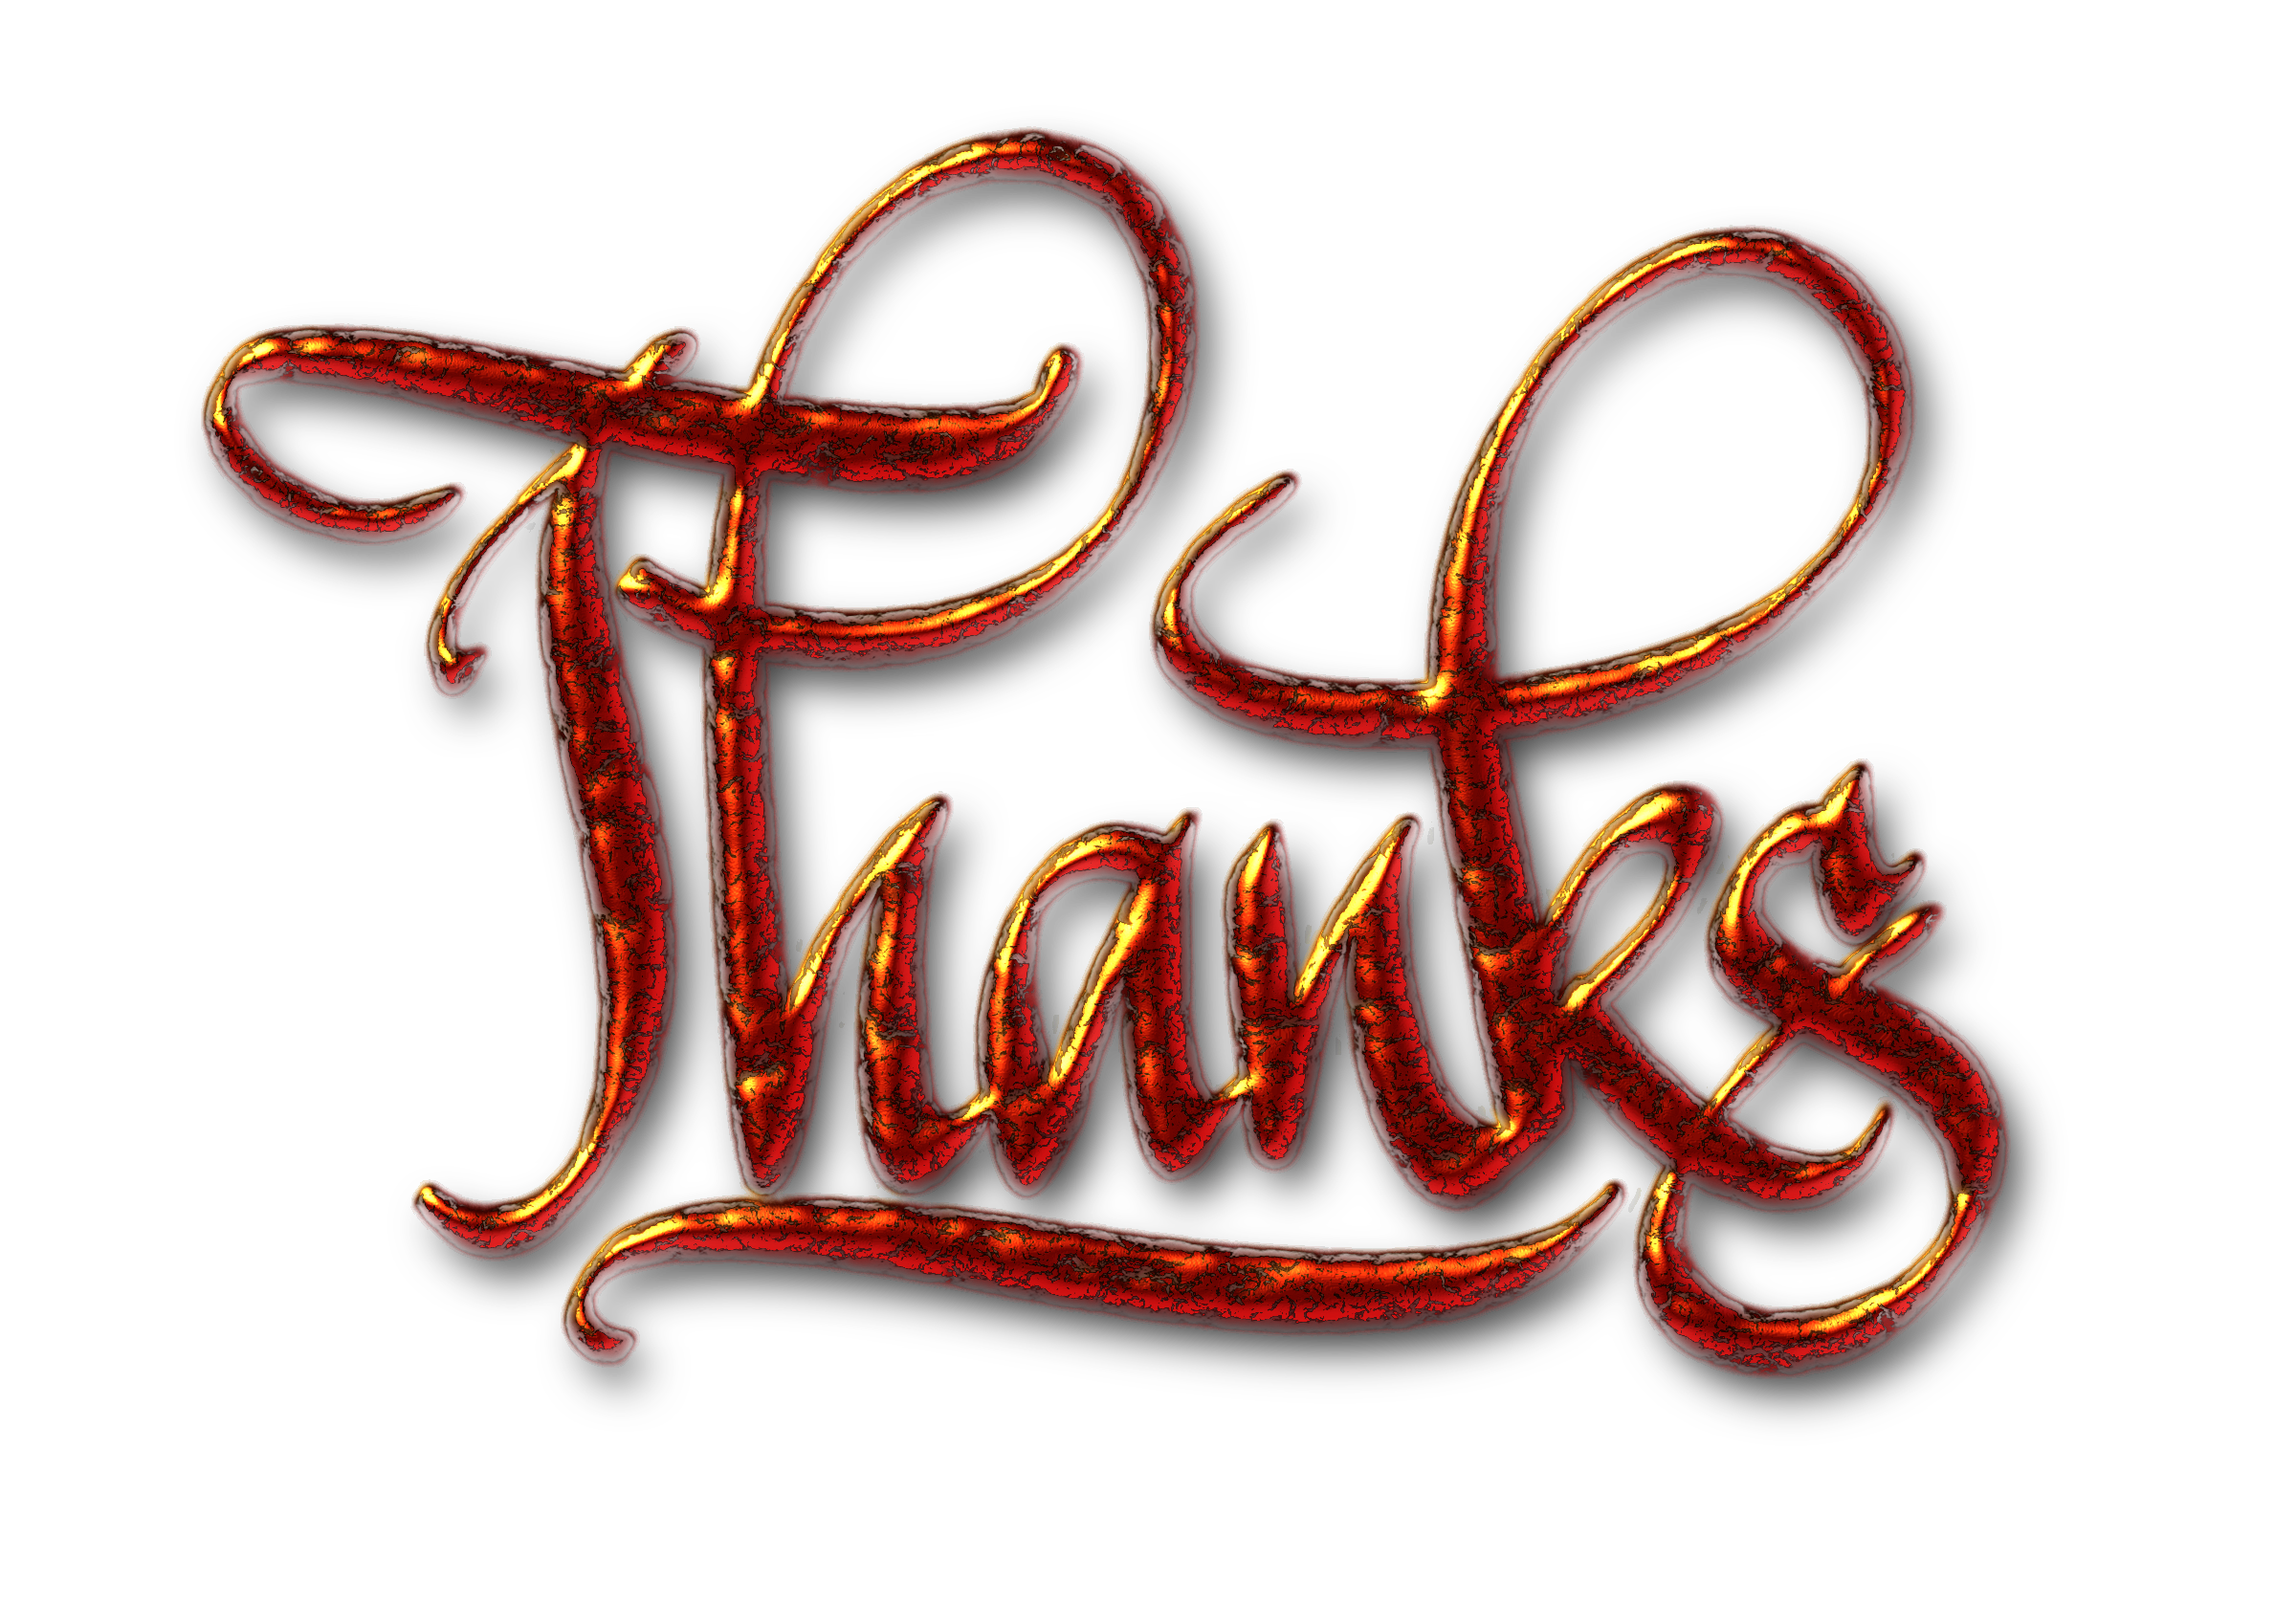 Thanks, textured digital calligraphy by florinf